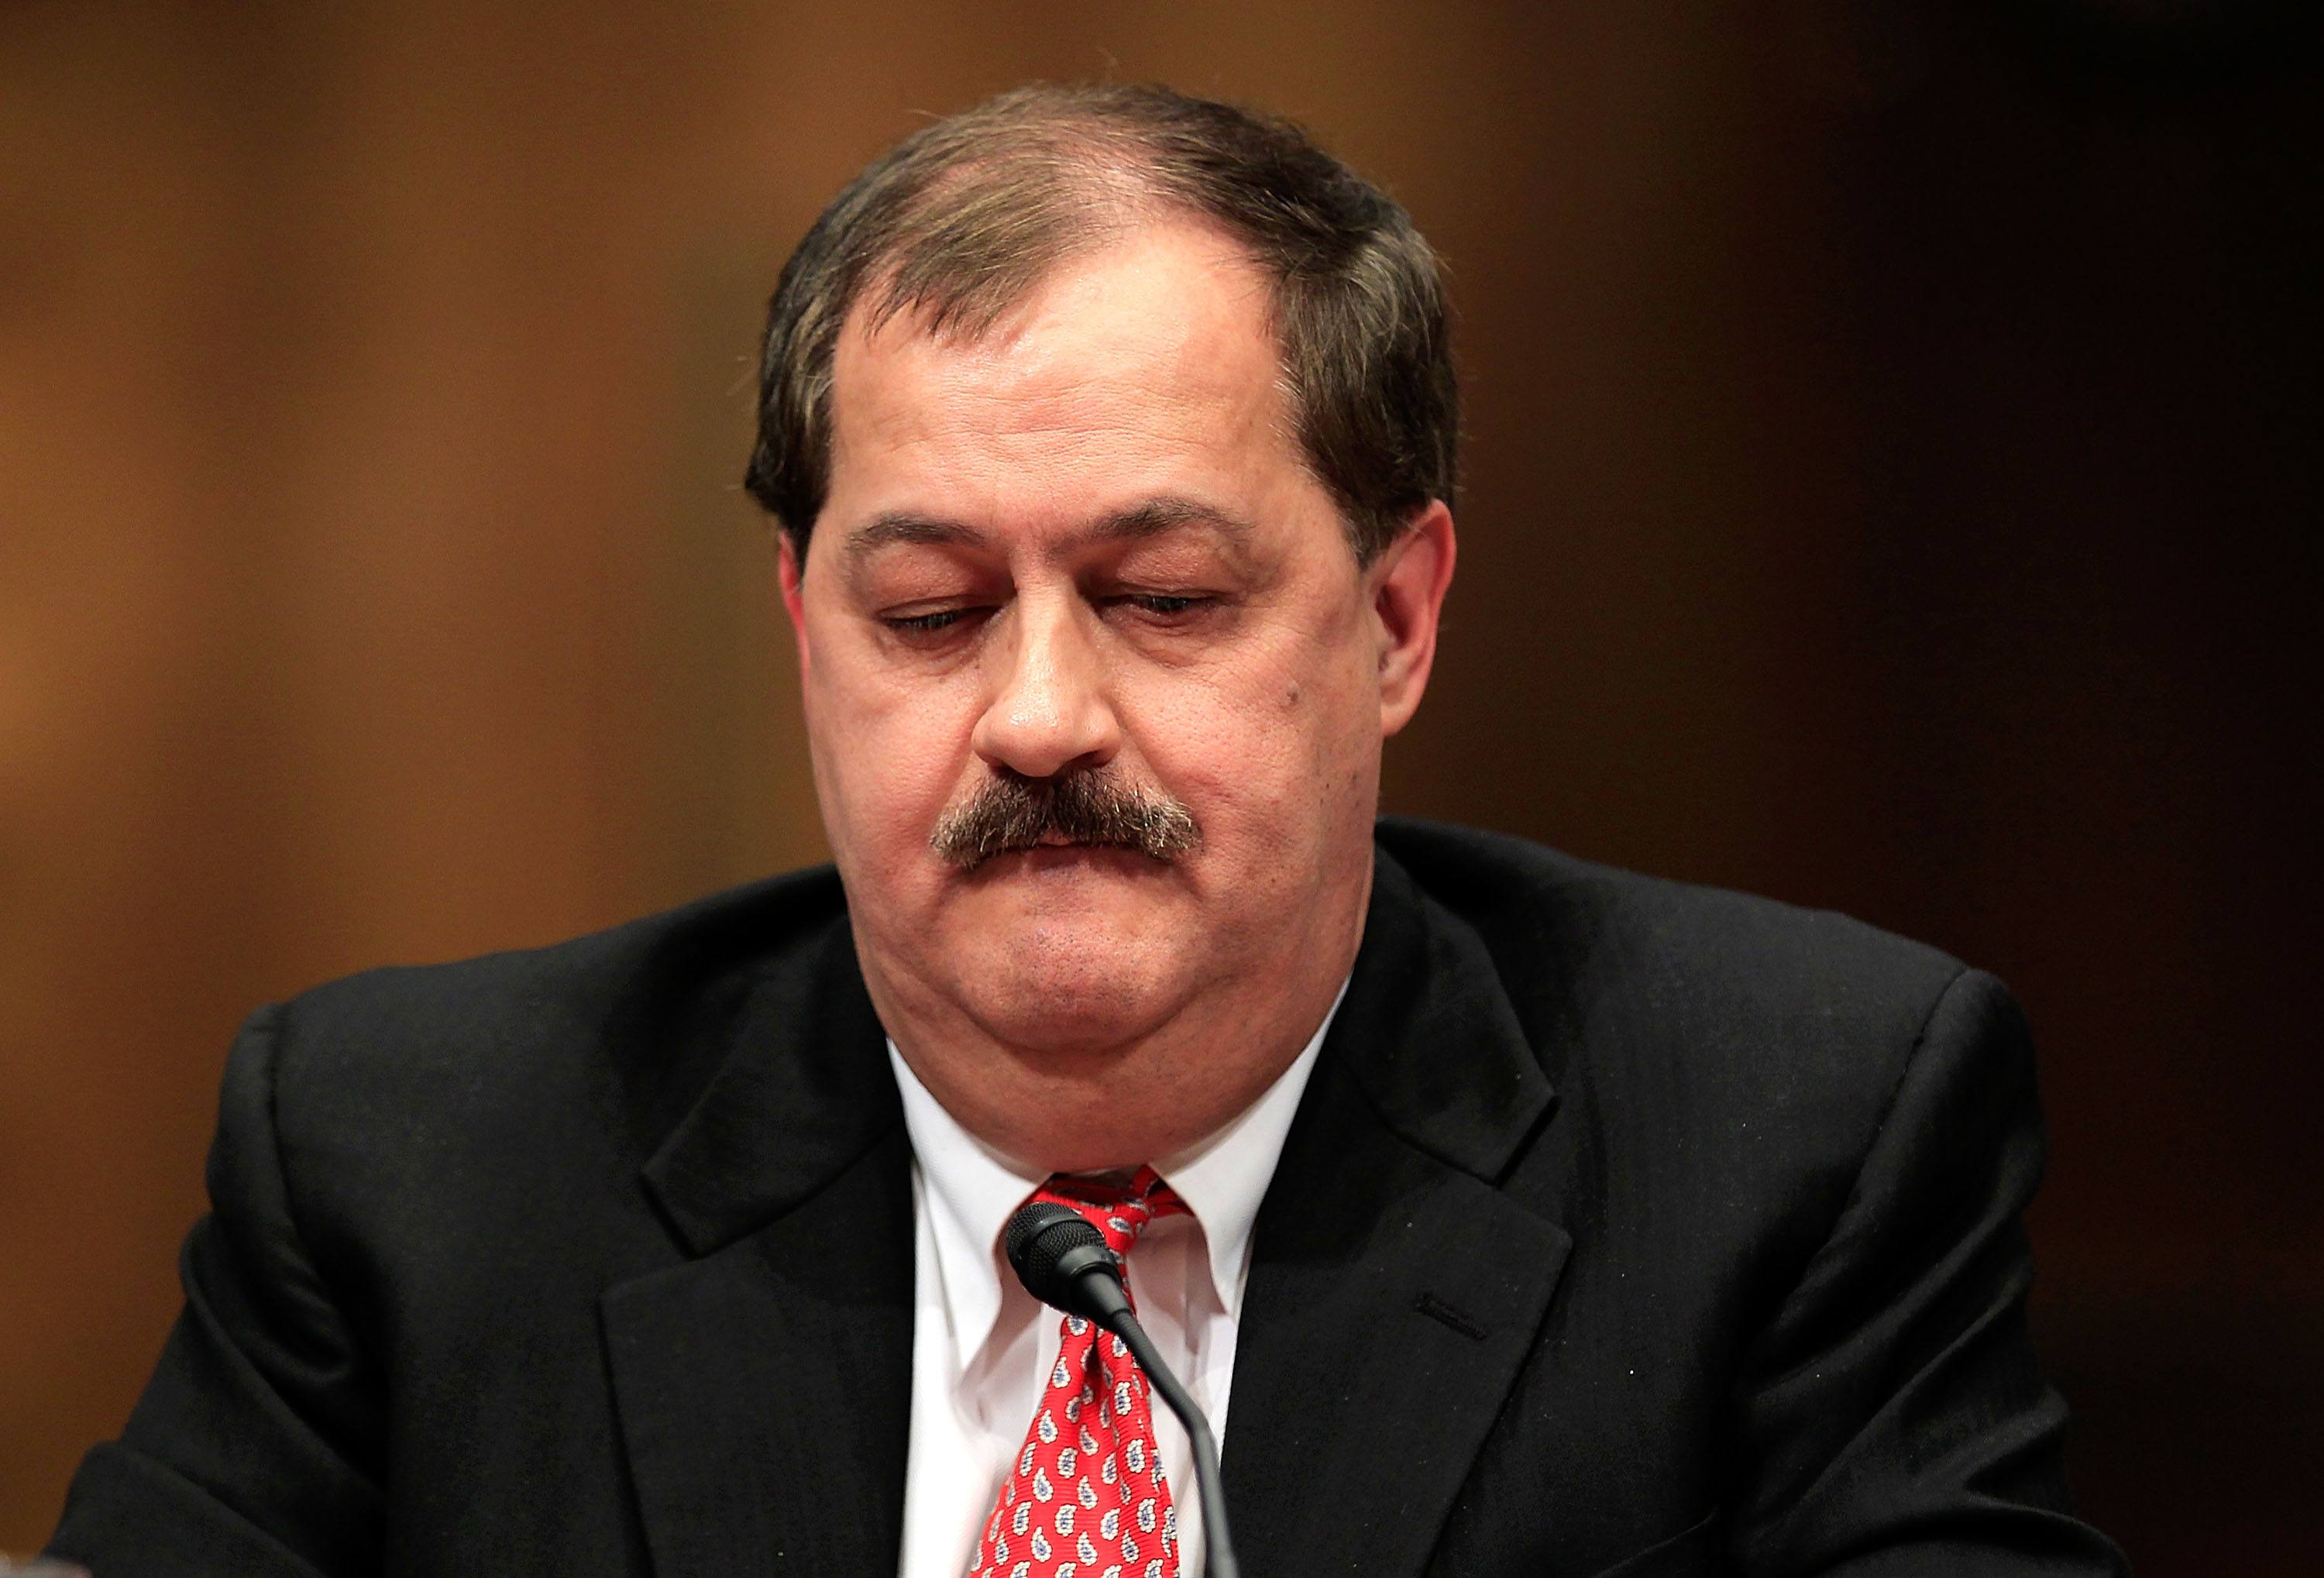 Don Blankenship can't possibly win an election ... can he?